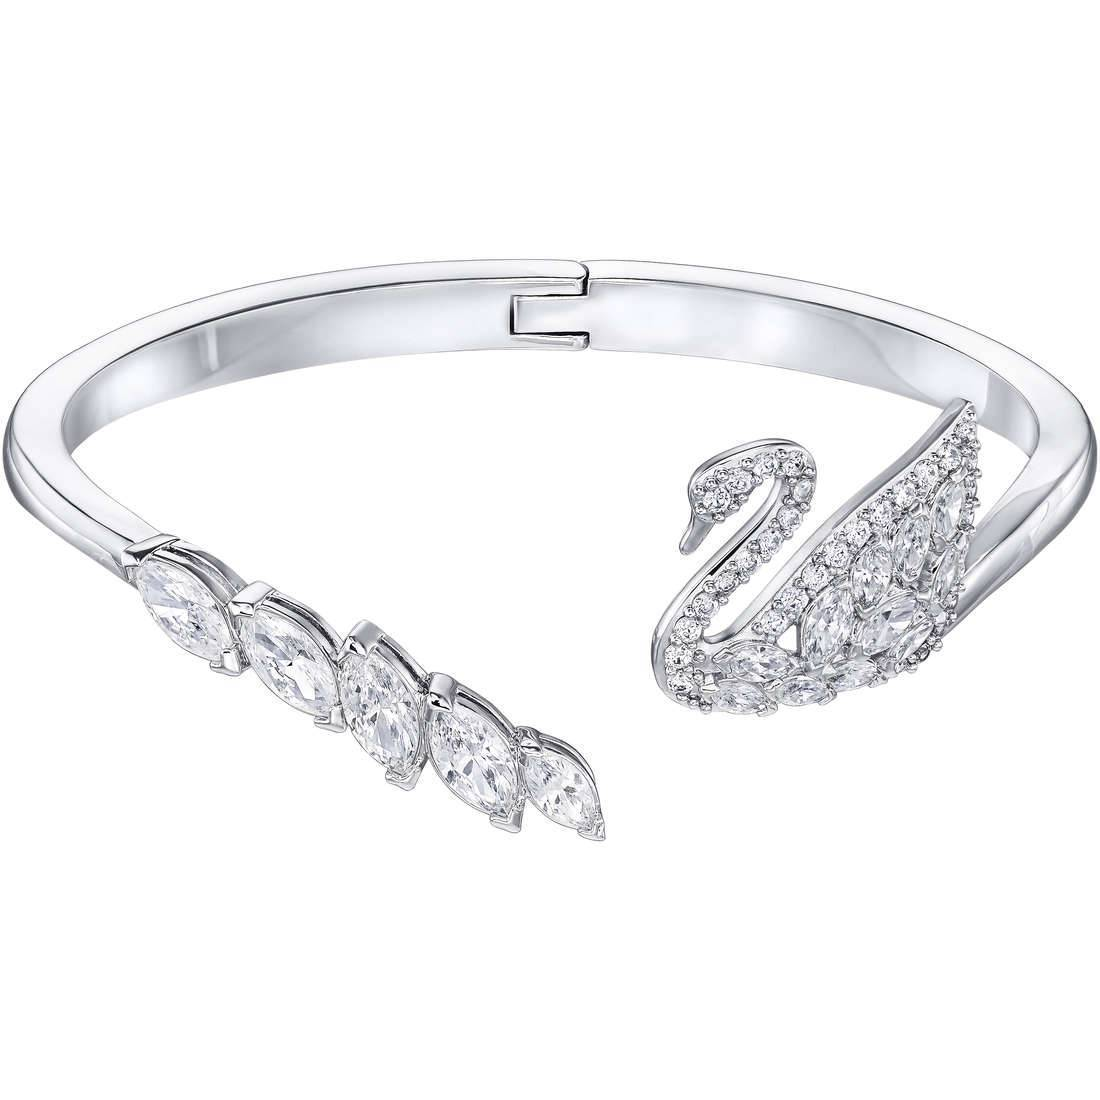 Swarovski 5258396 Swan Lake White Rhodium Plated Women's Bracelet